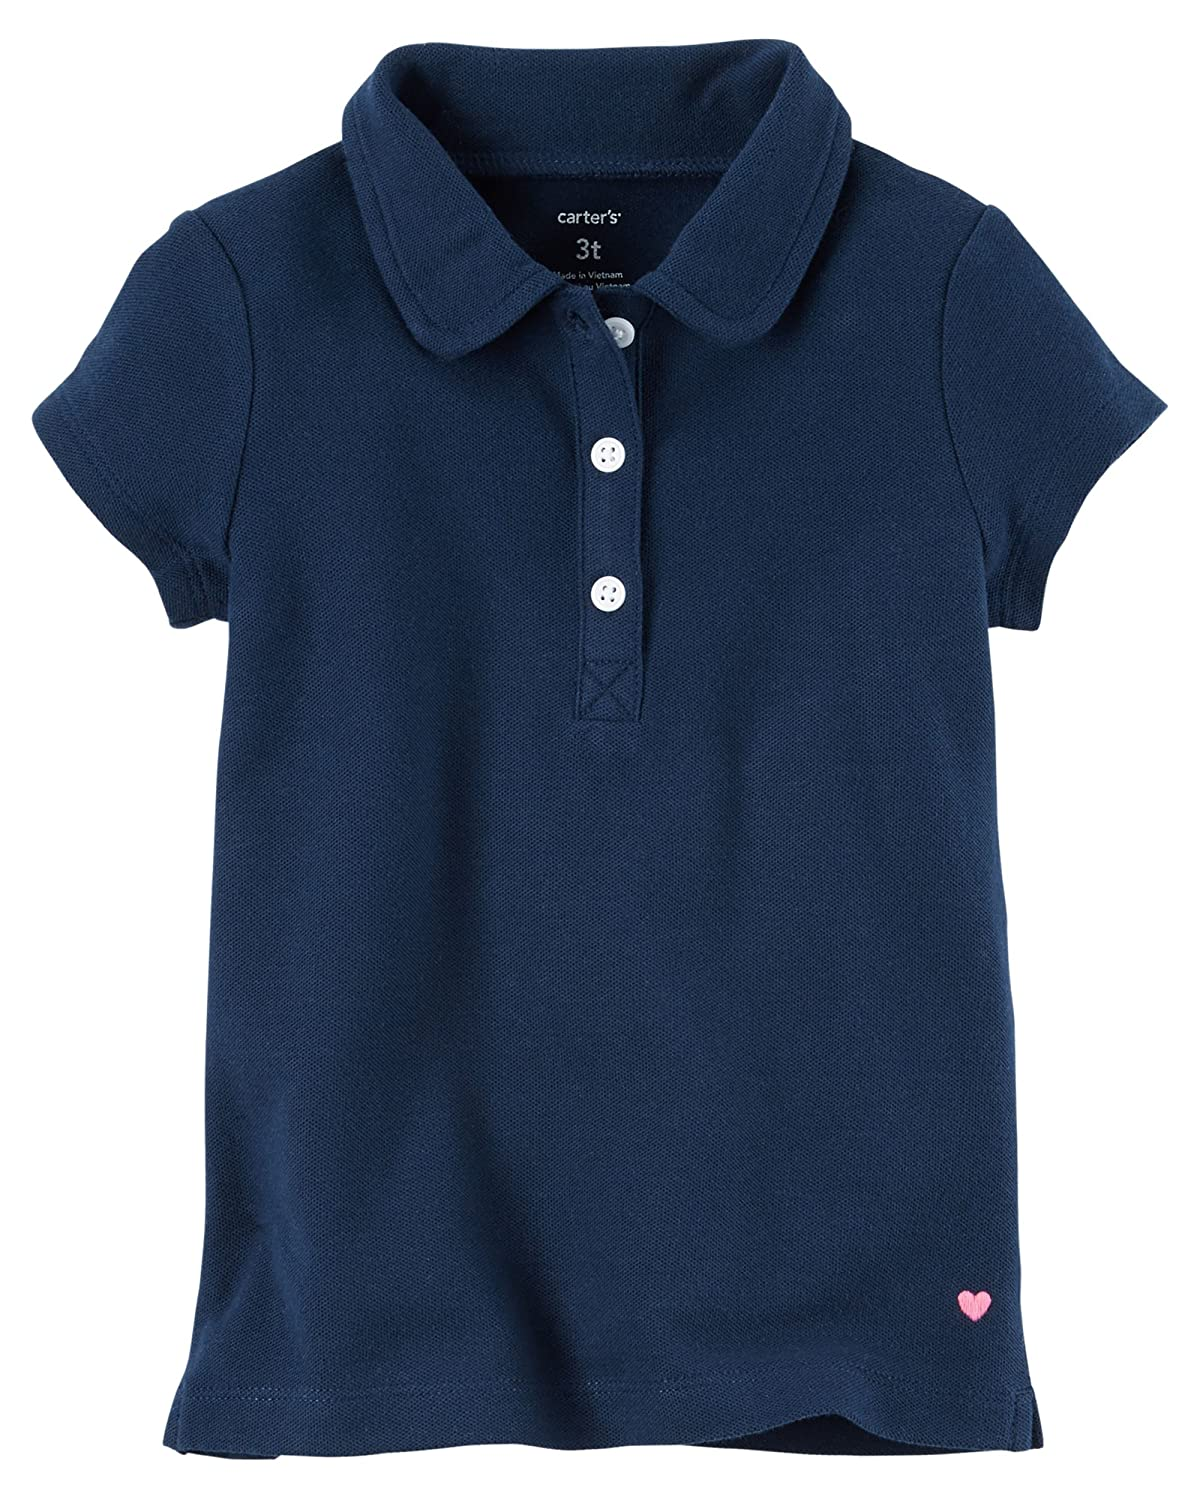 Navy, 6 Kids Carters Girls Short Sleeve Knit Polo